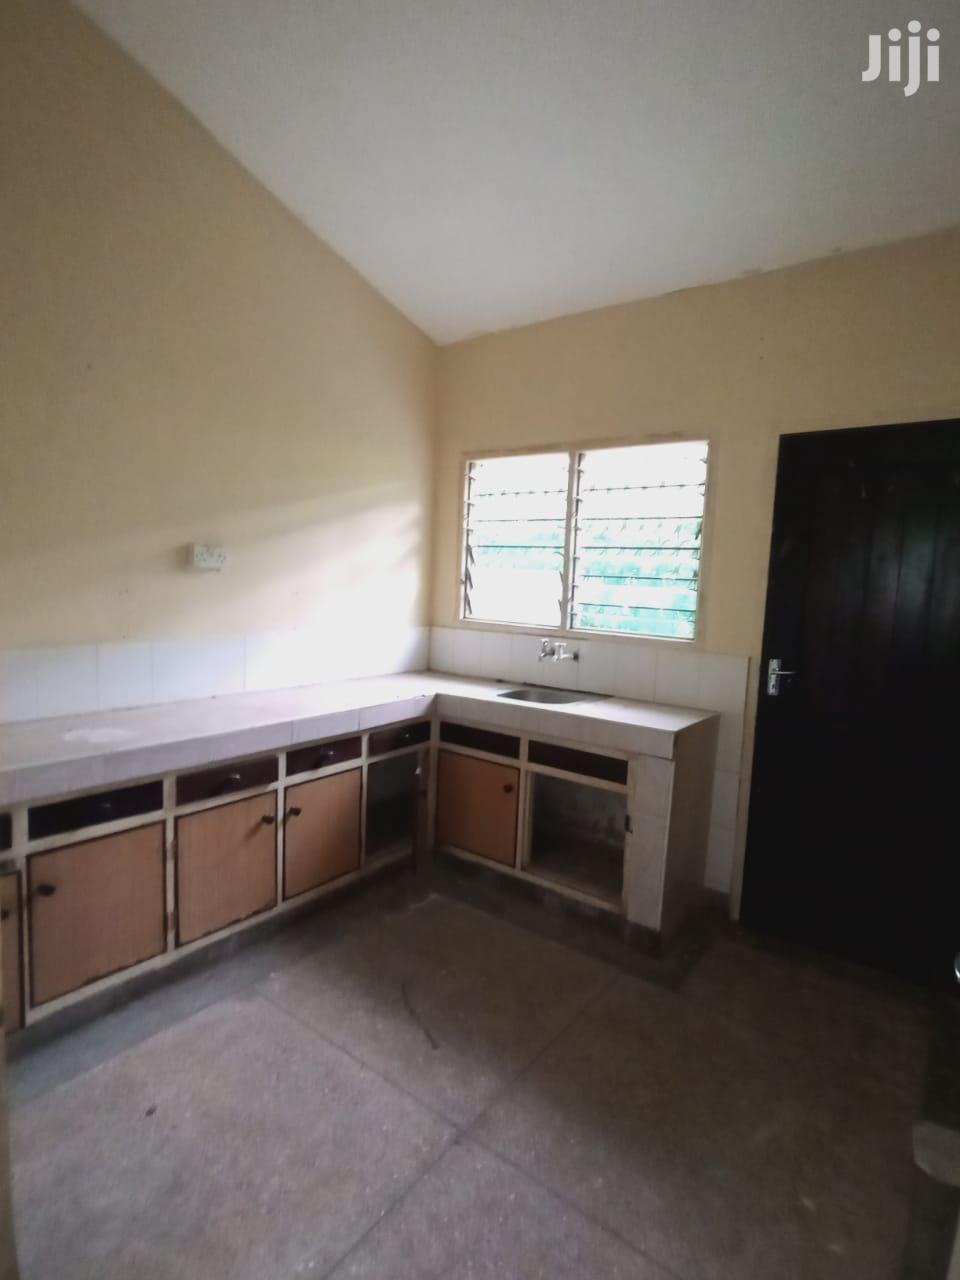 3 Bedroom For Rental | Land & Plots for Rent for sale in Kisauni, Mombasa, Kenya